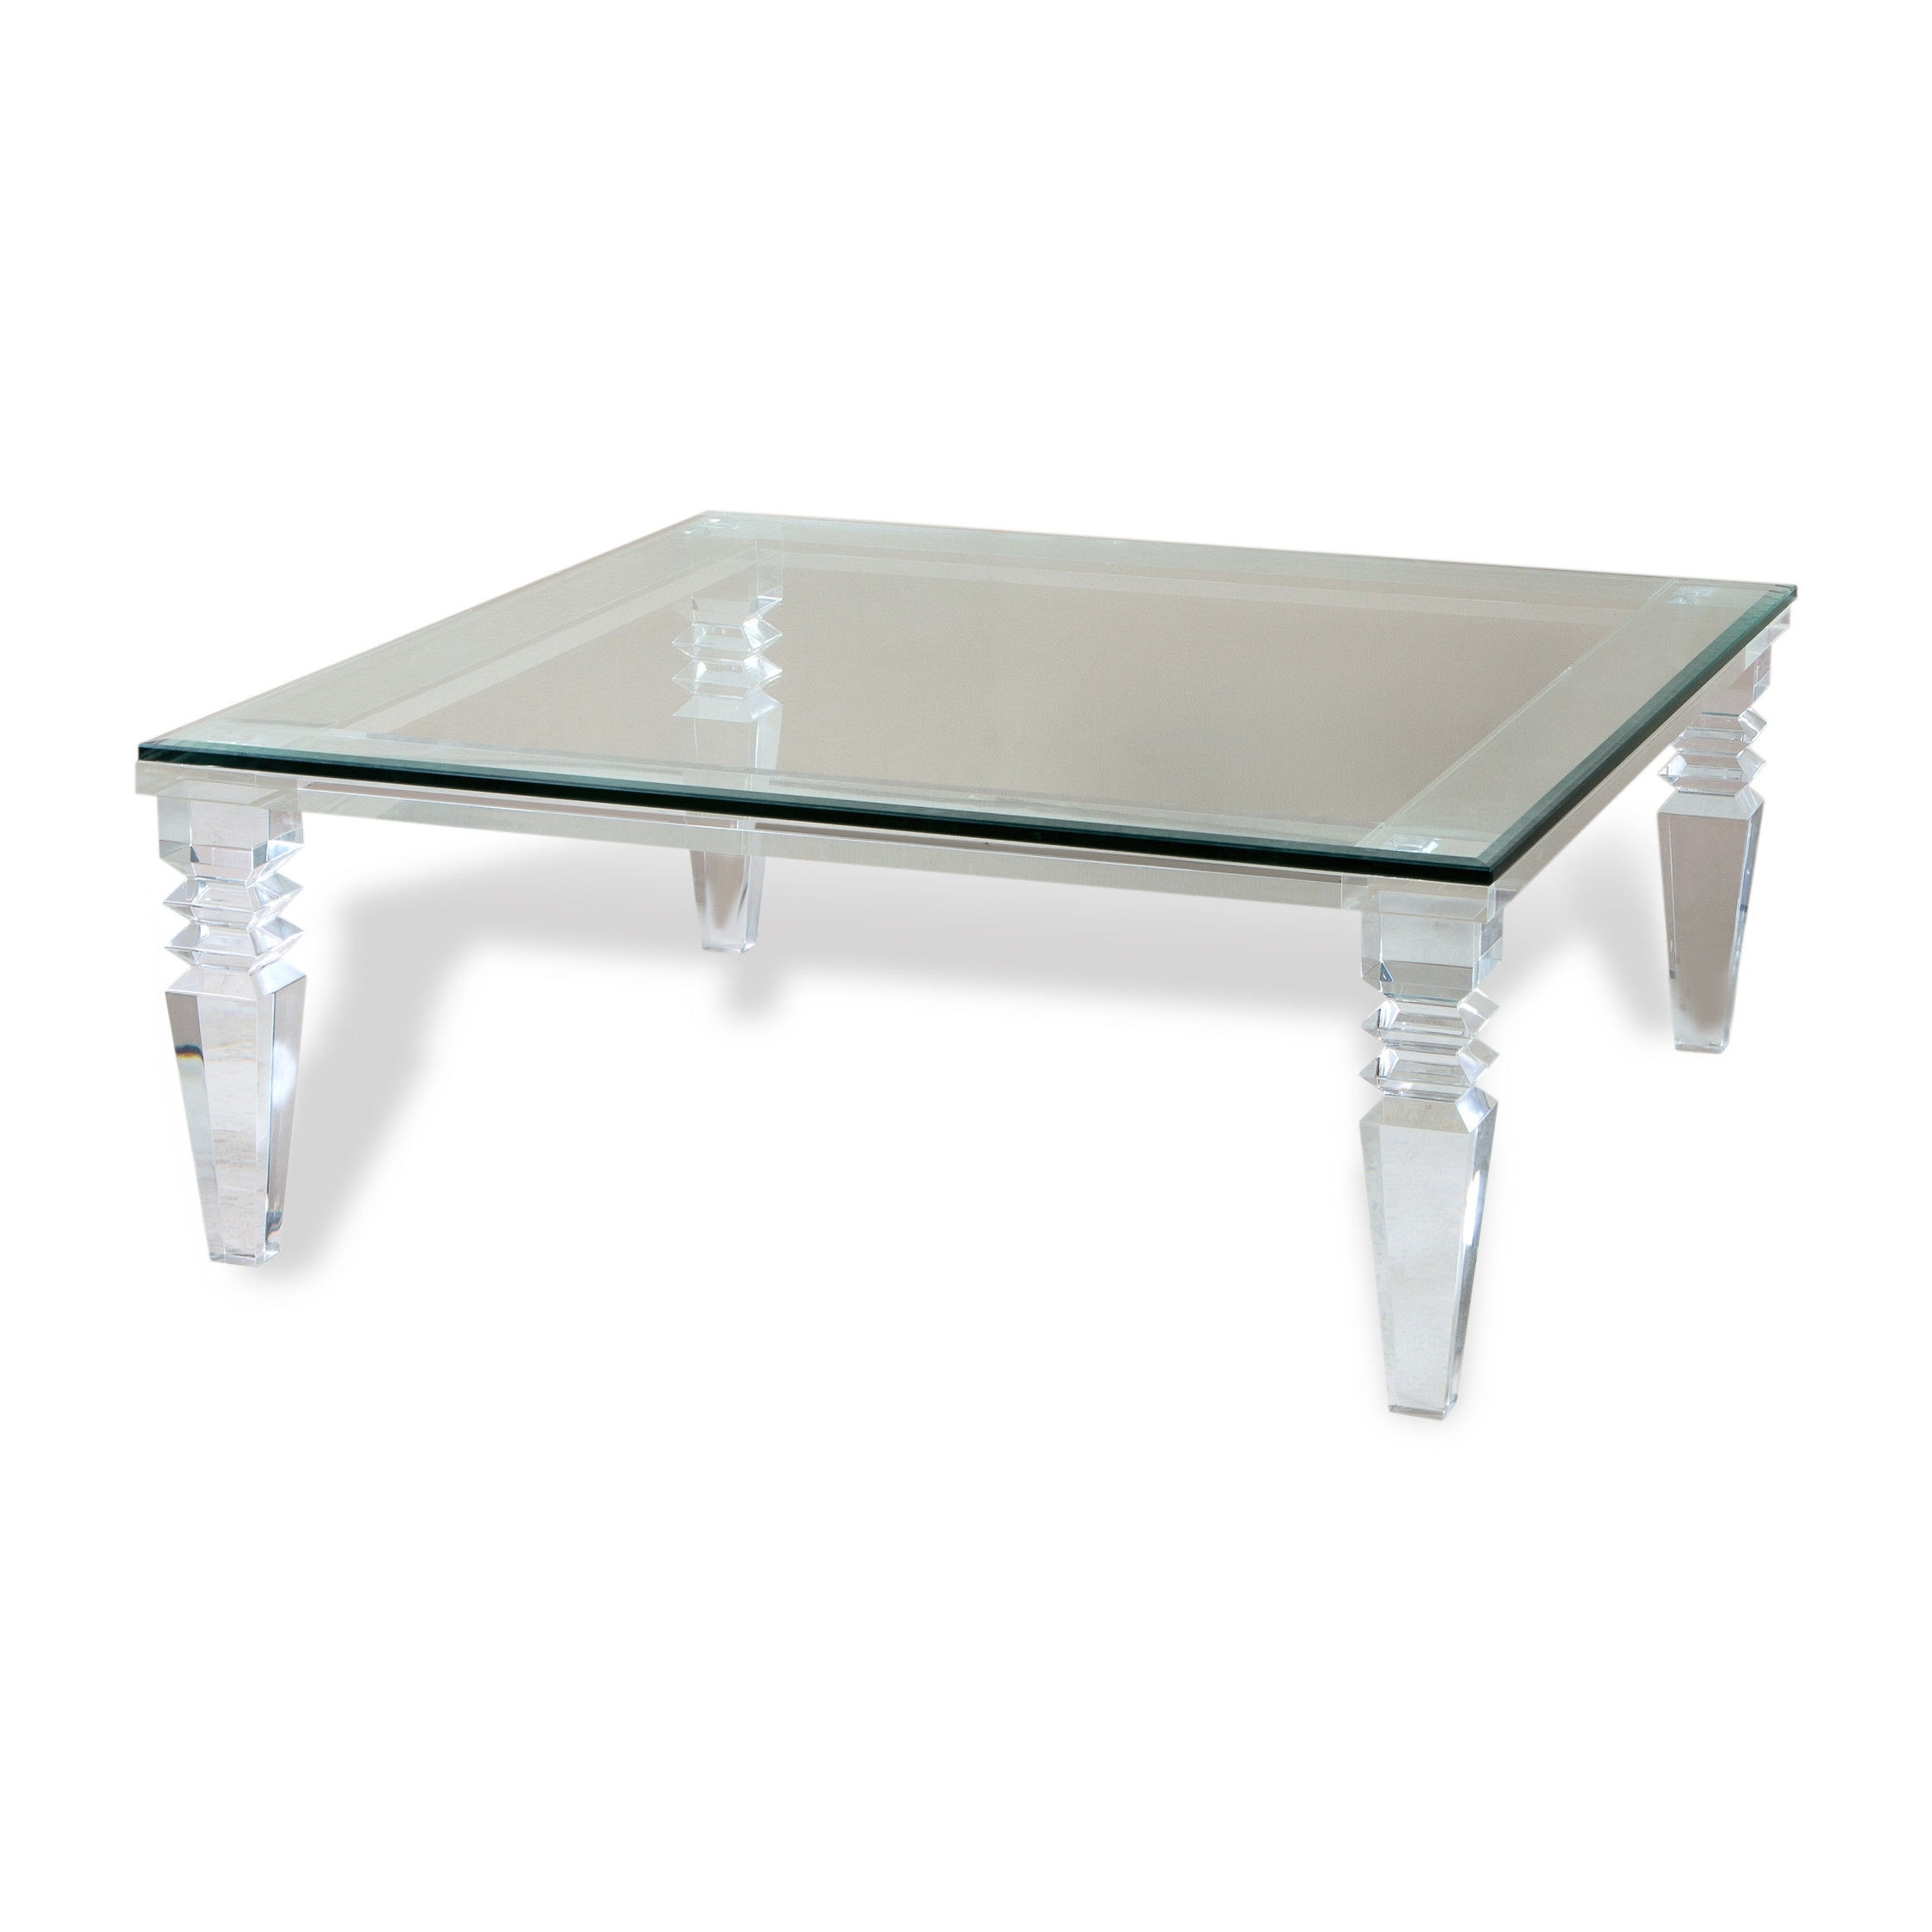 Acrylic Coffee Table For Sale Lovely Furniture Clear Glass Coffee With Regard To Most Recently Released Peekaboo Acrylic Tall Coffee Tables (Gallery 11 of 20)